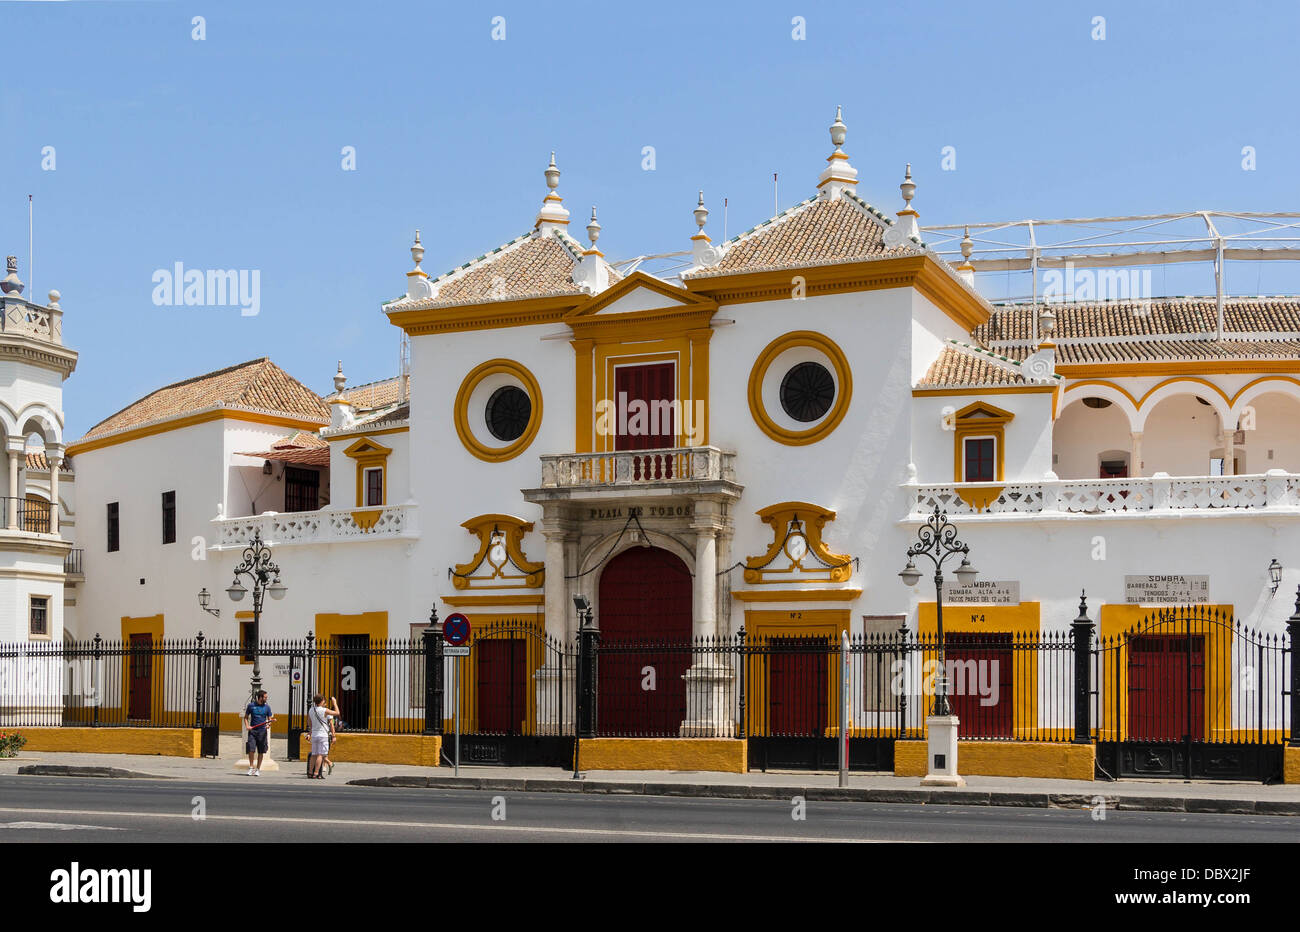 The main entrance (Puerta del Principe, the gate of the Prince) of the bullring of the Real Maestranza de Caballeria, - Stock Image